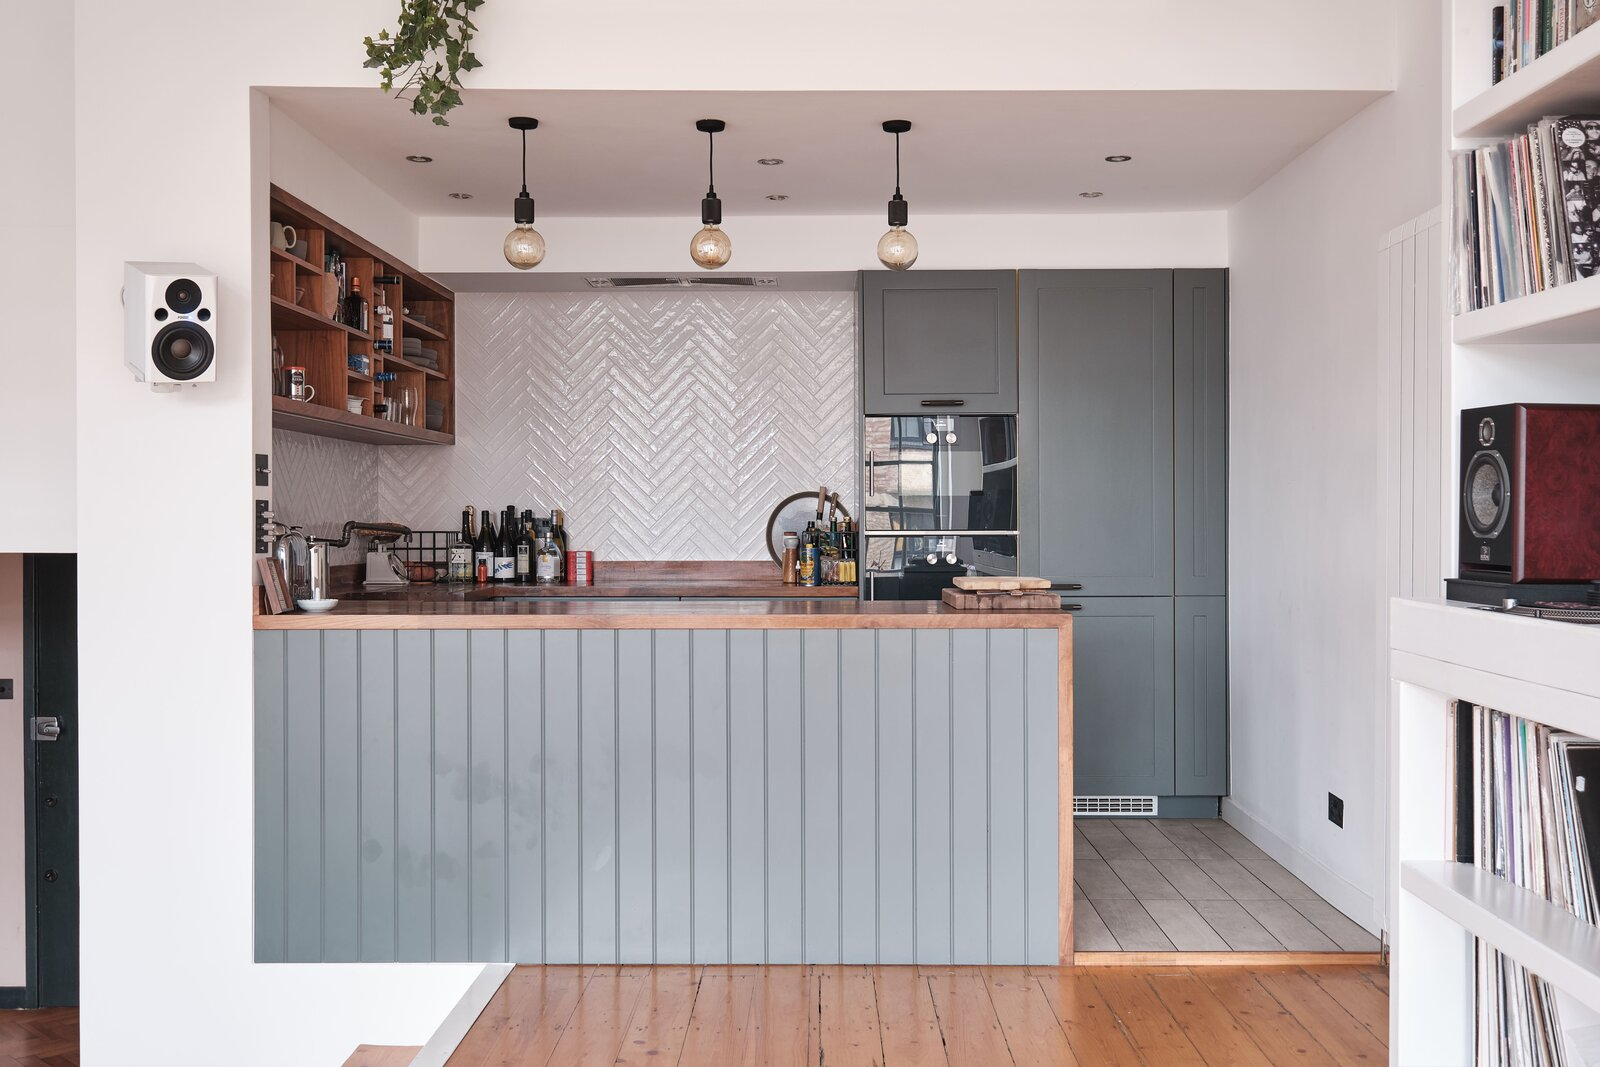 """Kitchen, Wood Counter, and Colorful Cabinet The updated kitchen comes with a a pair of <span style=""""font-family: Theinhardt, -apple-system, BlinkMacSystemFont, &quot;Segoe UI&quot;, Roboto, Oxygen-Sans, Ubuntu, Cantarell, &quot;Helvetica Neue&quot;, sans-serif;"""">Gaggenau ovens and Miele appliances</span><span style=""""font-family: Theinhardt, -apple-system, BlinkMacSystemFont, &quot;Segoe UI&quot;, Roboto, Oxygen-Sans, Ubuntu, Cantarell, &quot;Helvetica Neue&quot;, sans-serif;"""">. </span>  Photo 7 of 13 in For £1.2M, Snag This Spacious London Flat Inside a Converted Victorian Schoolhouse"""